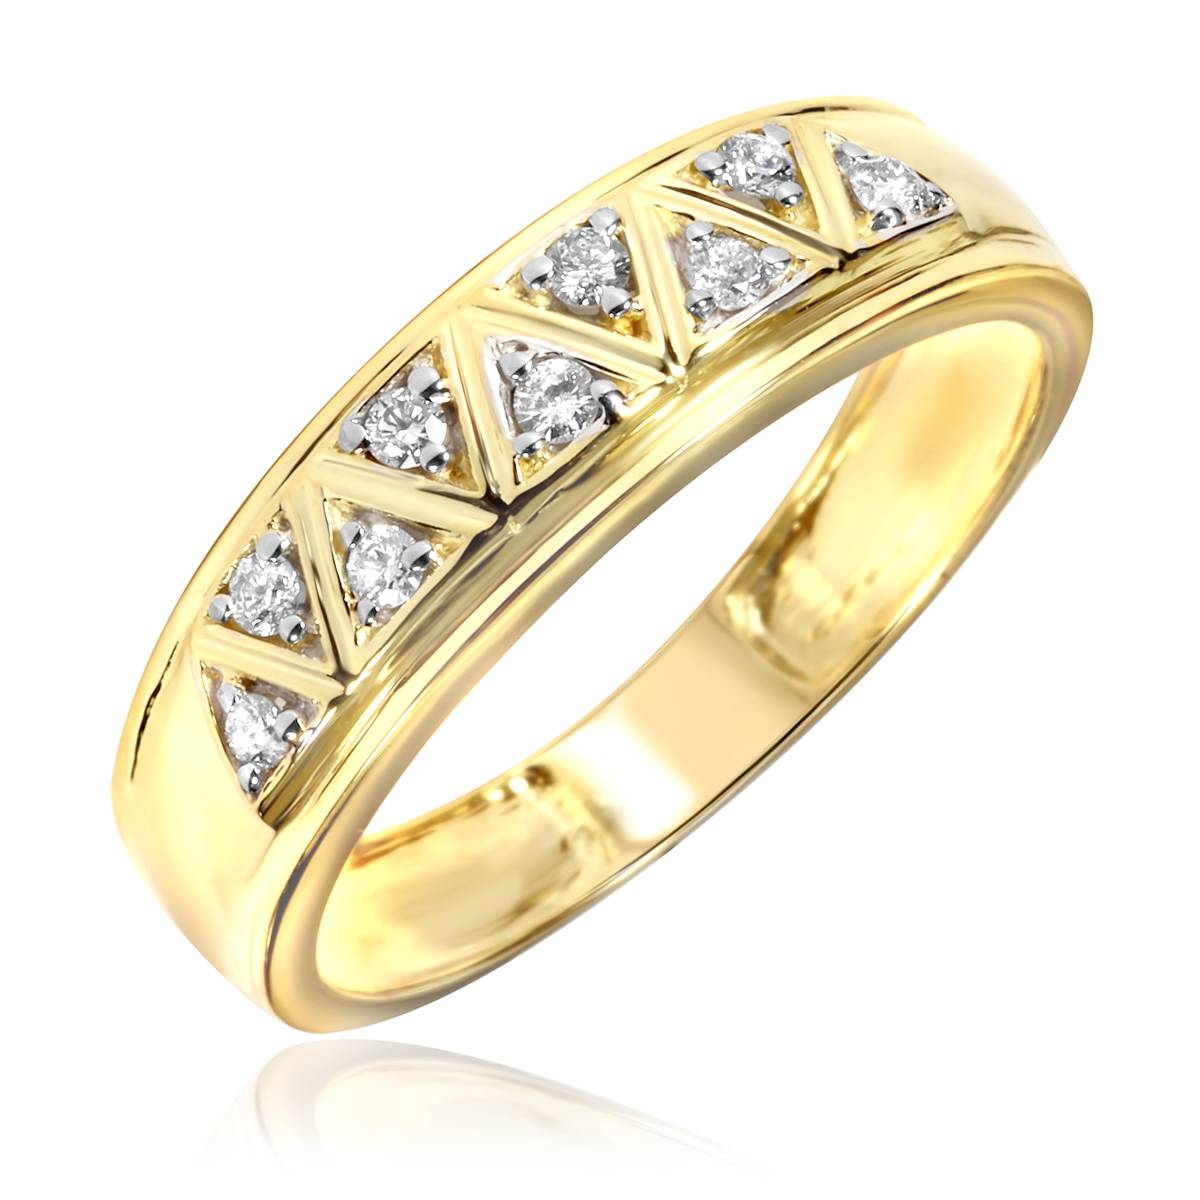 22 Carat Gold Mens Wedding Rings – Wedding Rings Design Ideas With Regard To 22 Carat Gold Wedding Rings (View 3 of 15)